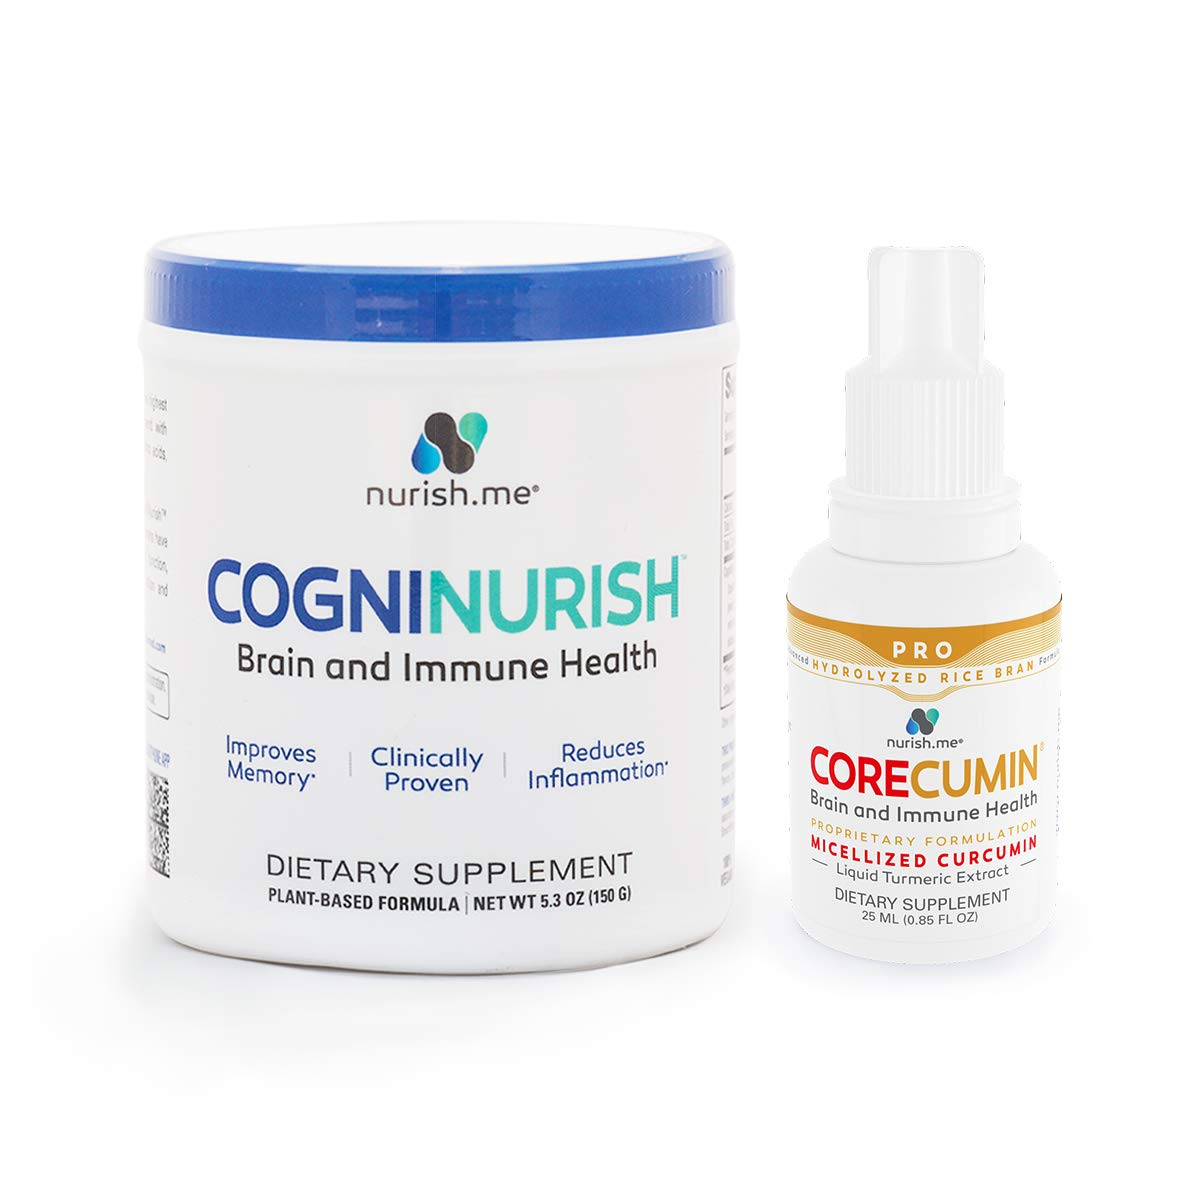 ComboCognition Pro - Complete Brain Food Bundle – CogniNurish Brain Support and Immune System Booster and CoreCumin Pro Anti-Inflammatory Liquid Turmeric Curcumin and Rice Bran Supplement